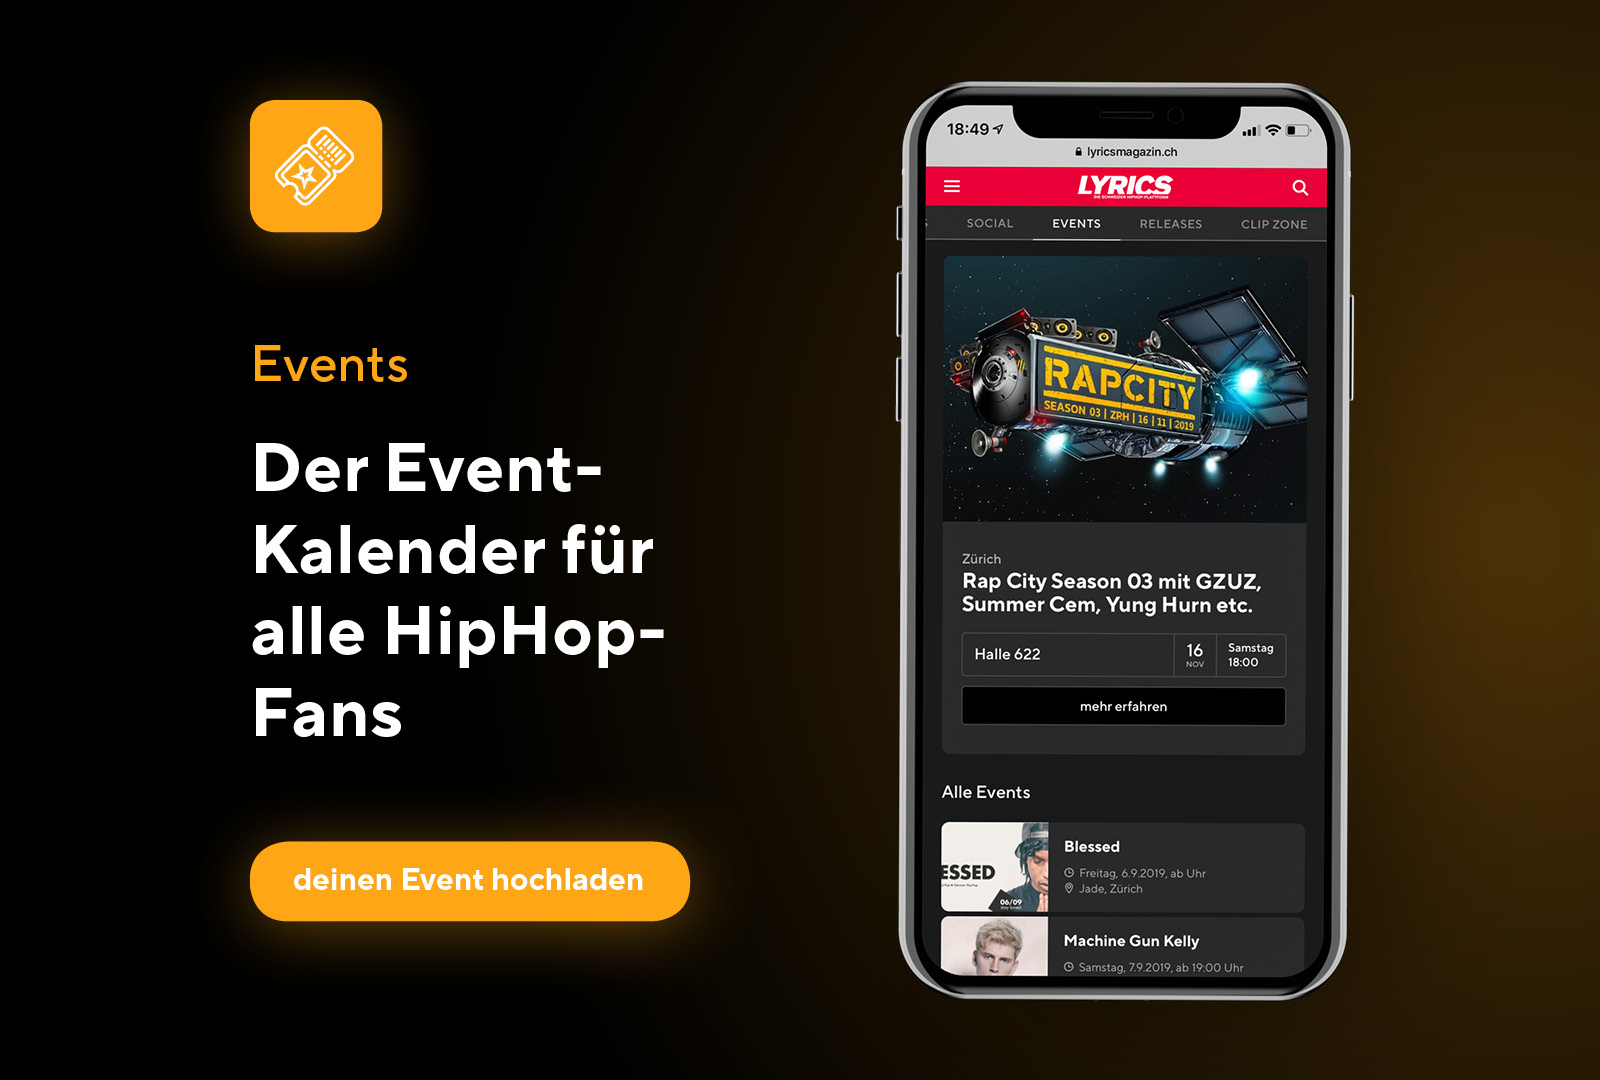 Nightlife- und Konzerttipps in der Event-Zone